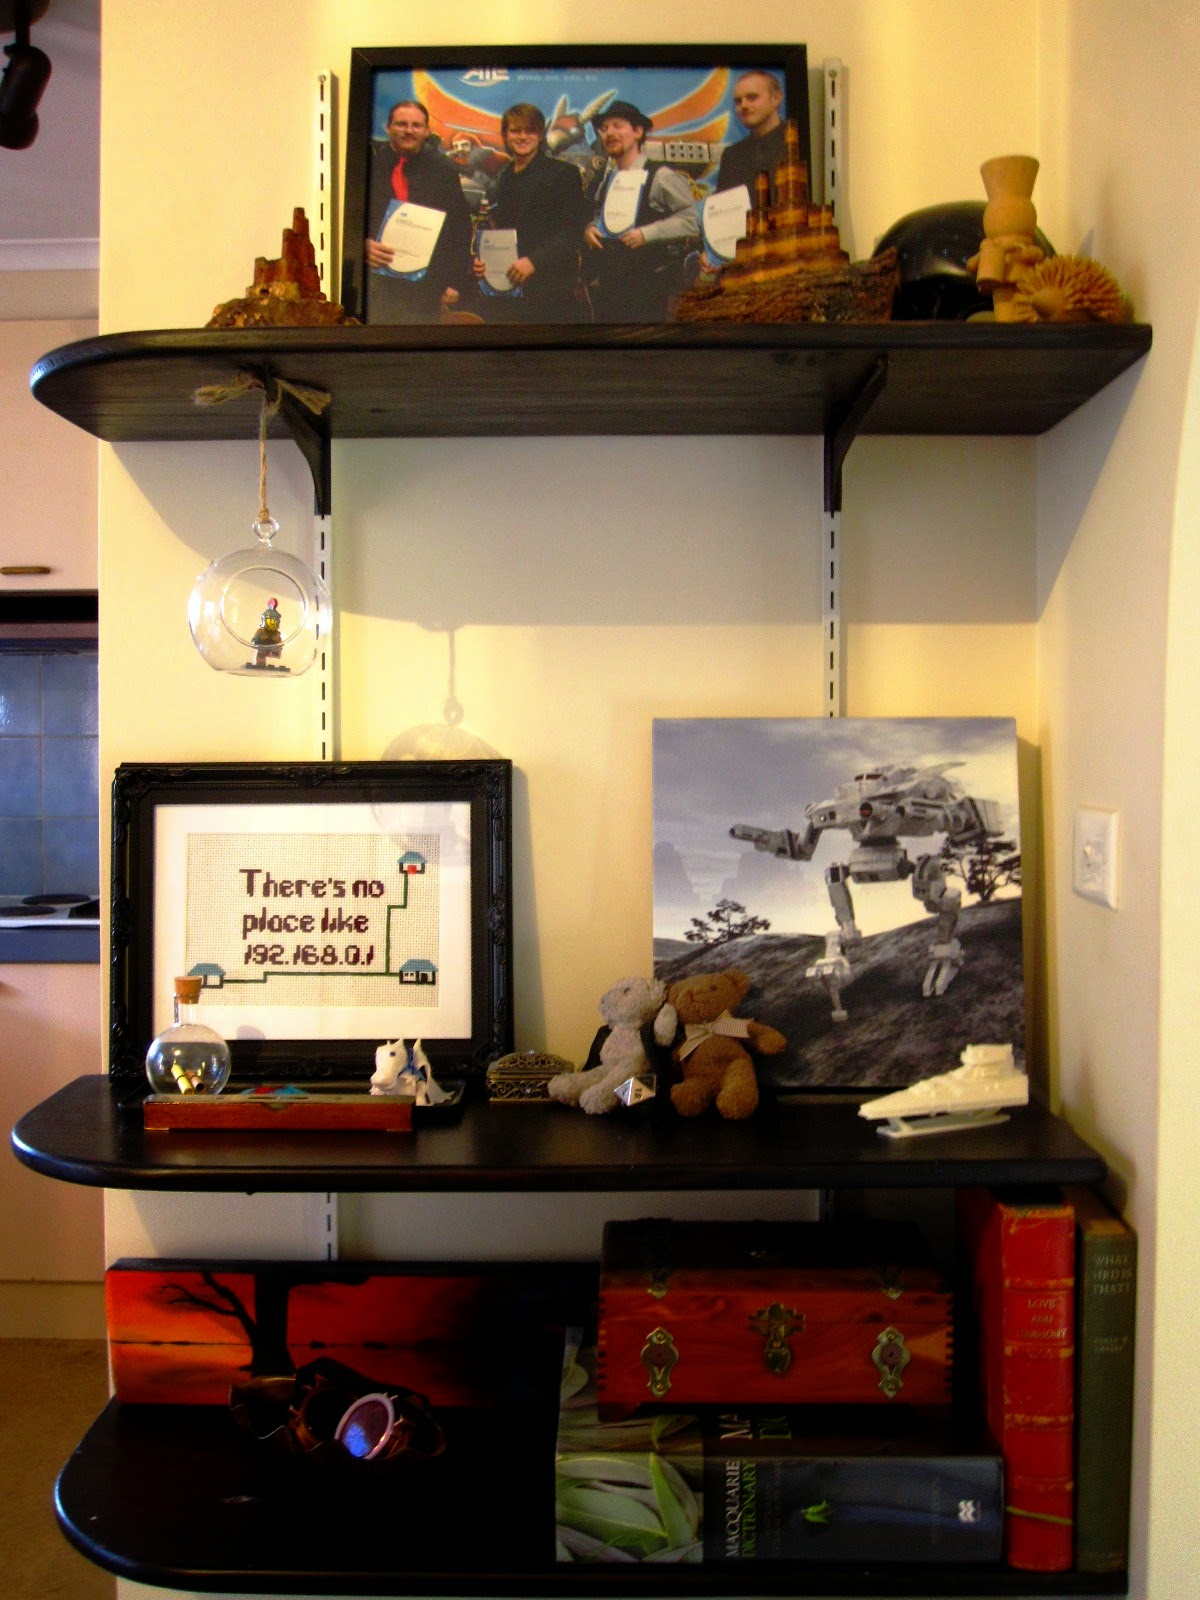 A set of three wall shelves showcasing a selection of personal items including a photograph, books, a 3D-printed space ship and two small teddy bears.